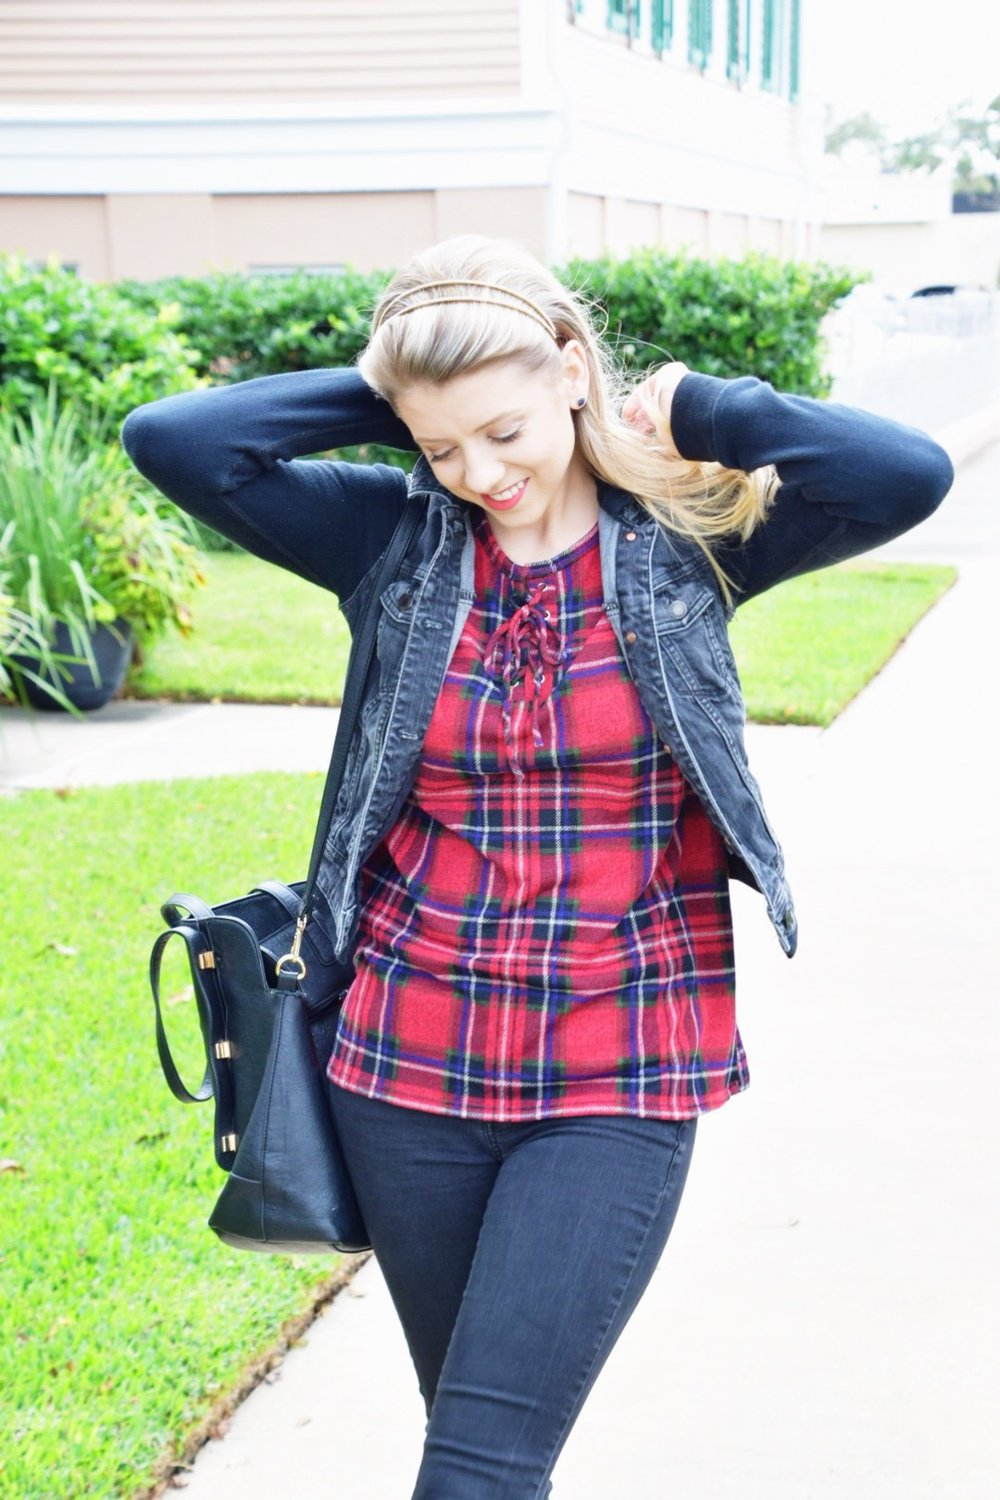 Houston Fashion Blogger - Shop PinkBlush - Plaid Shirt (5).JPG